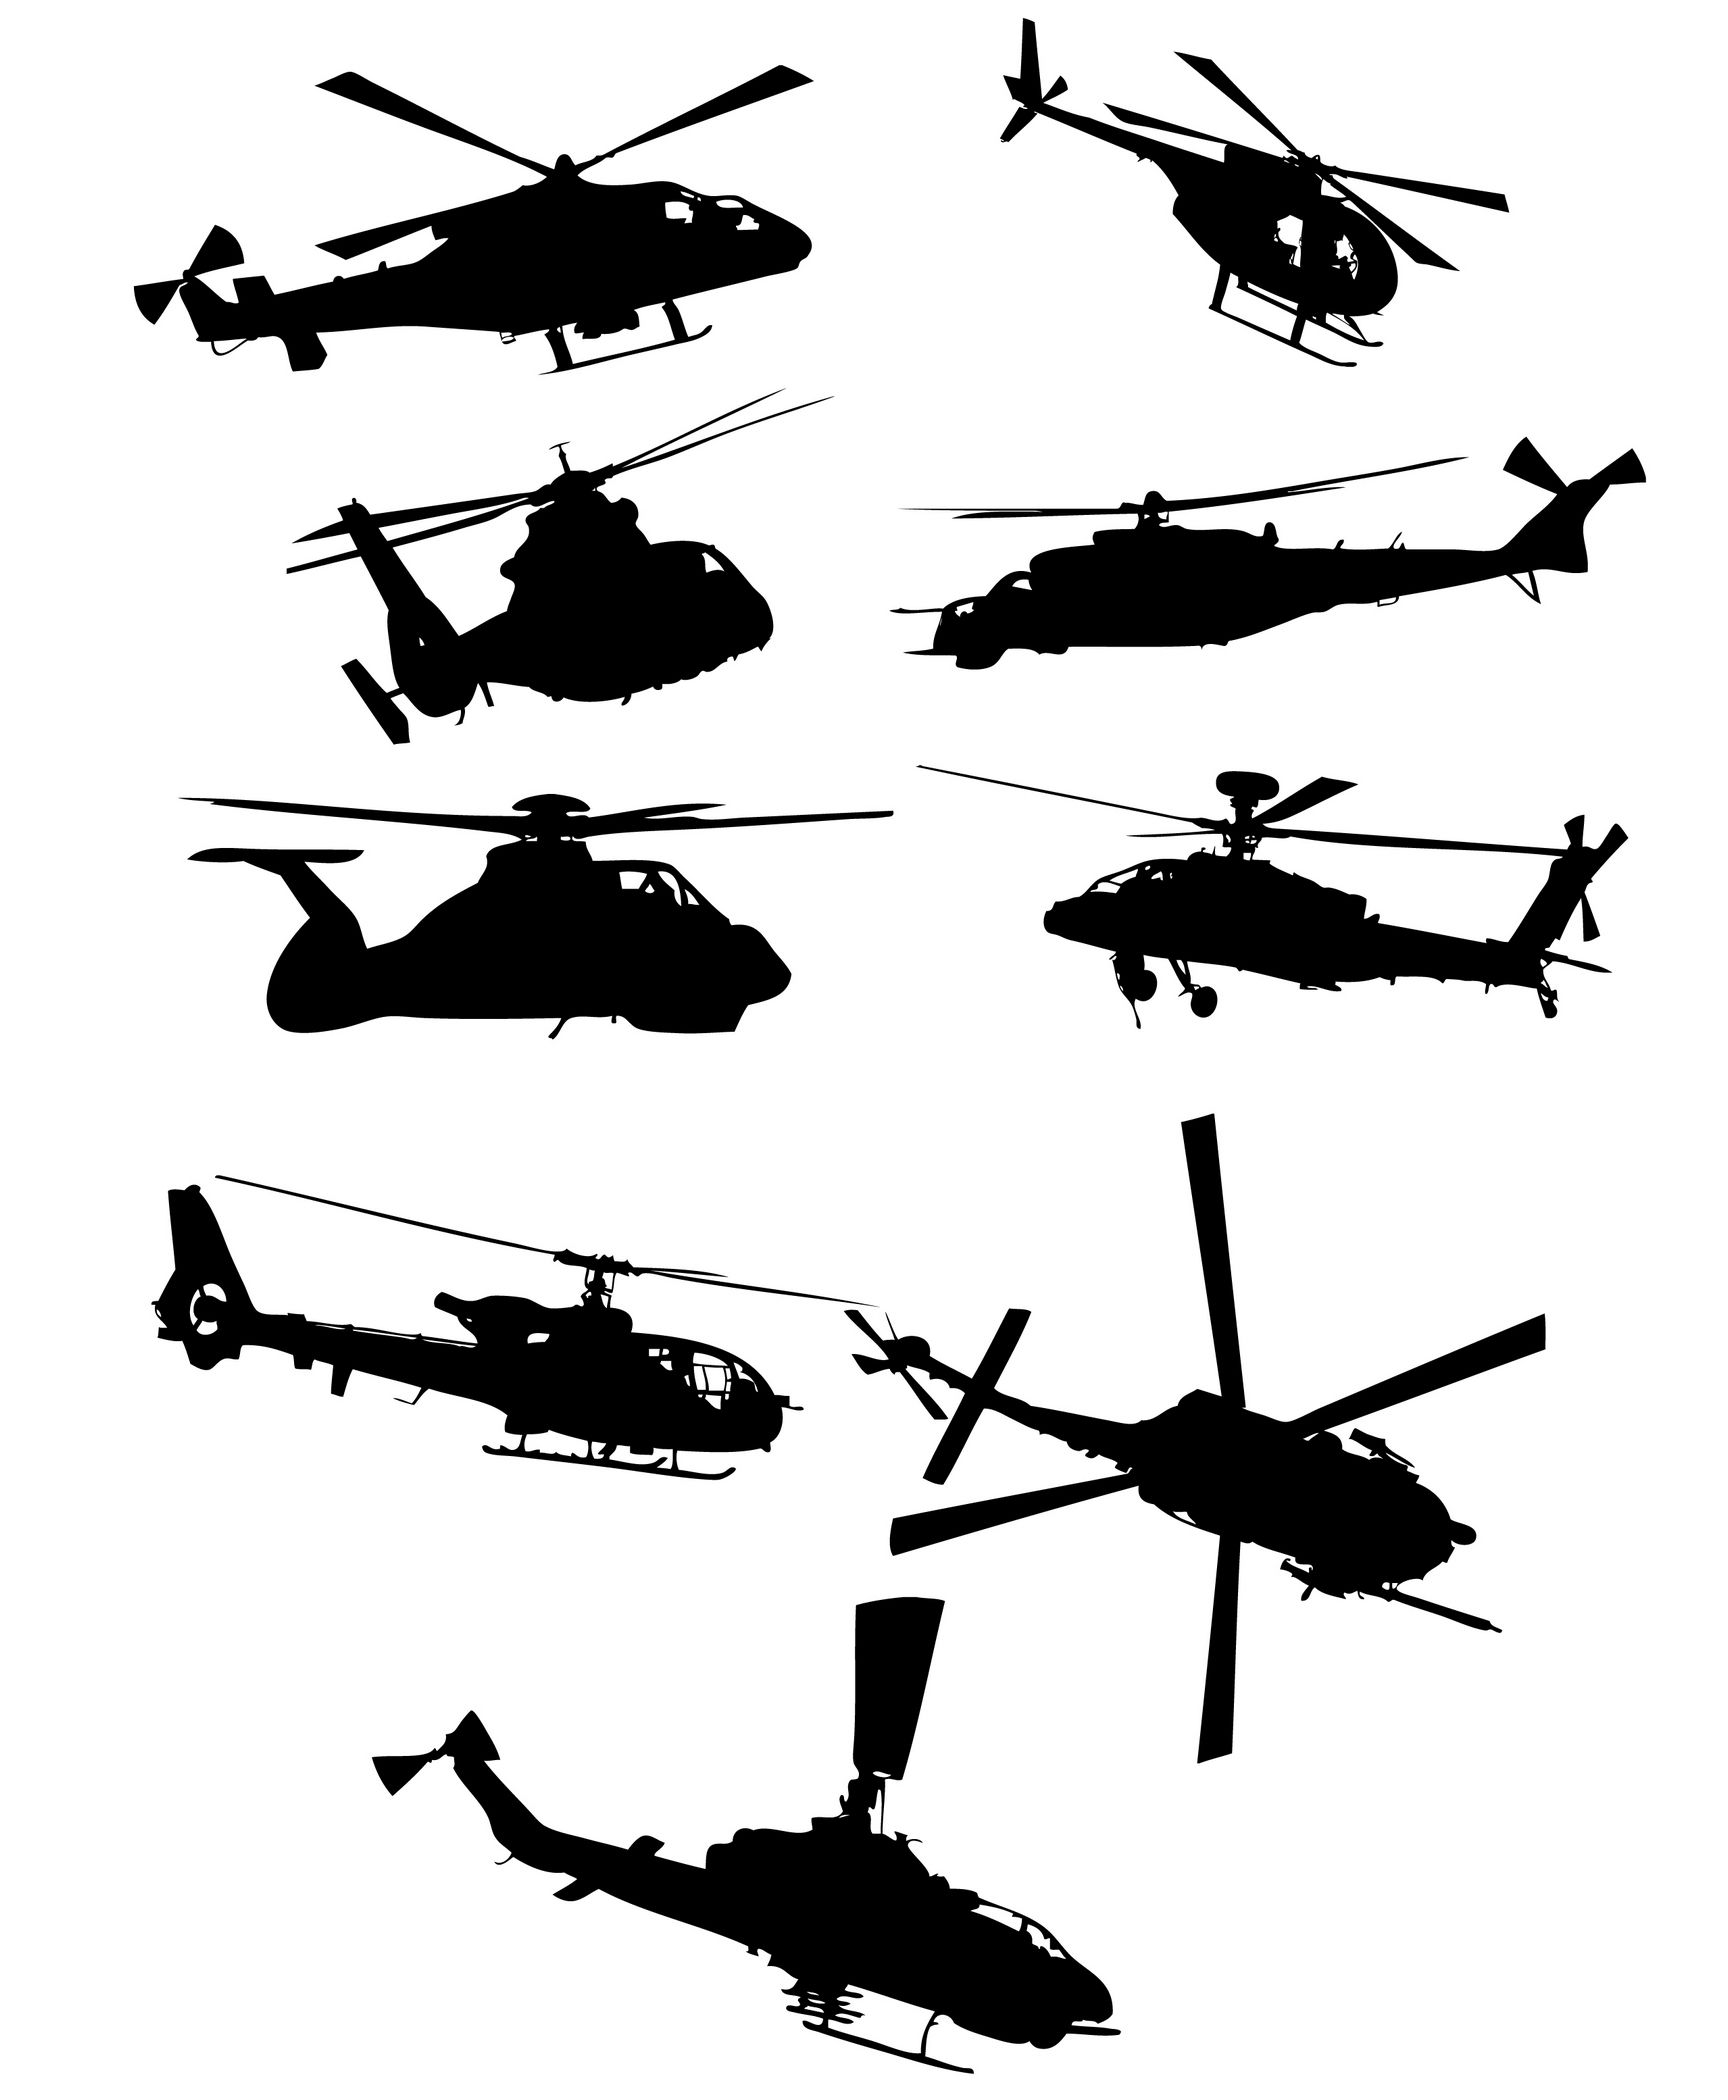 Helicopter Silhouettes | Silhouettes Vector | Pinterest ...